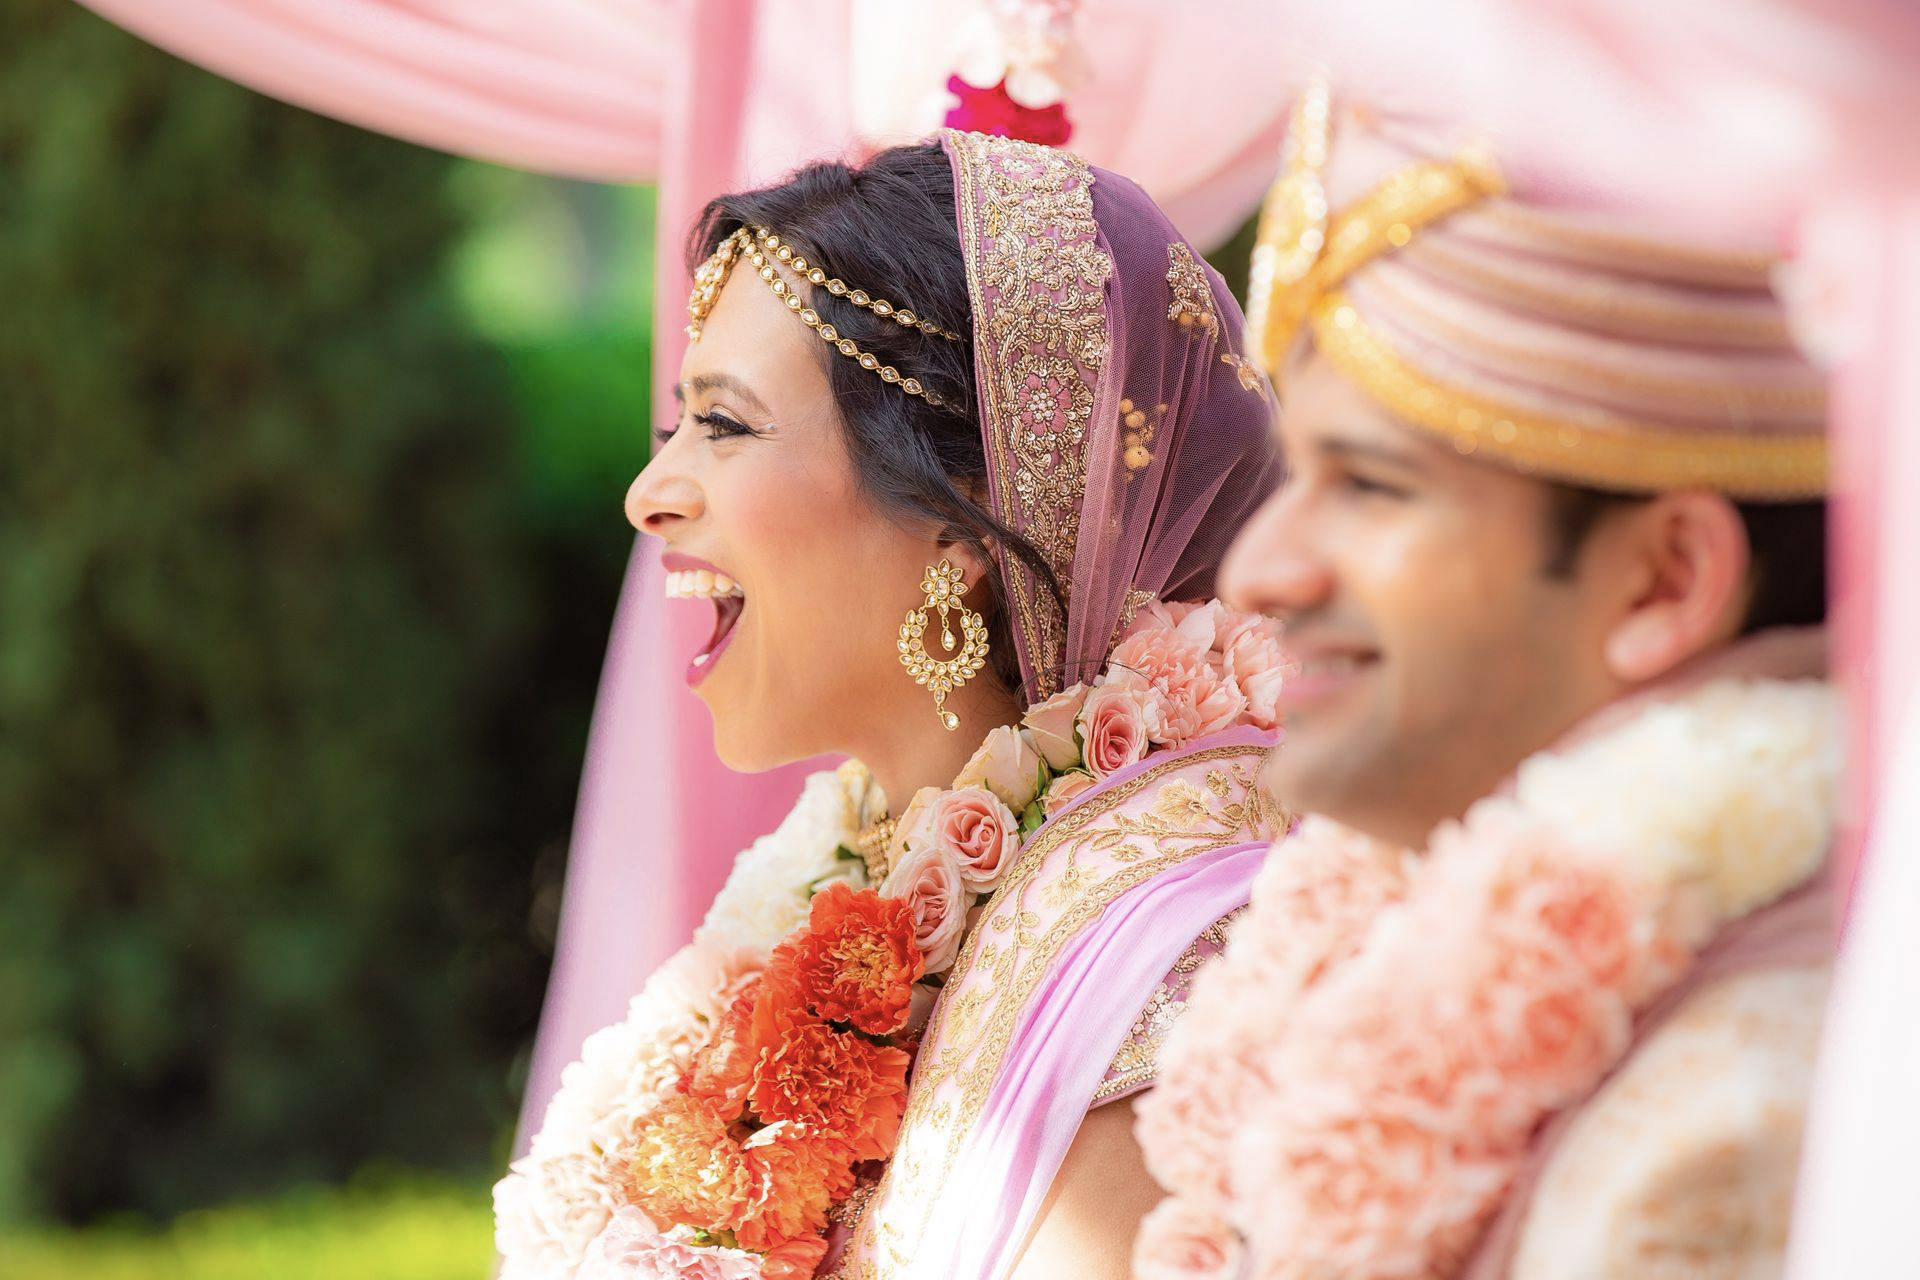 Close up portrait of an Indian couple smiling and cheering after getting married